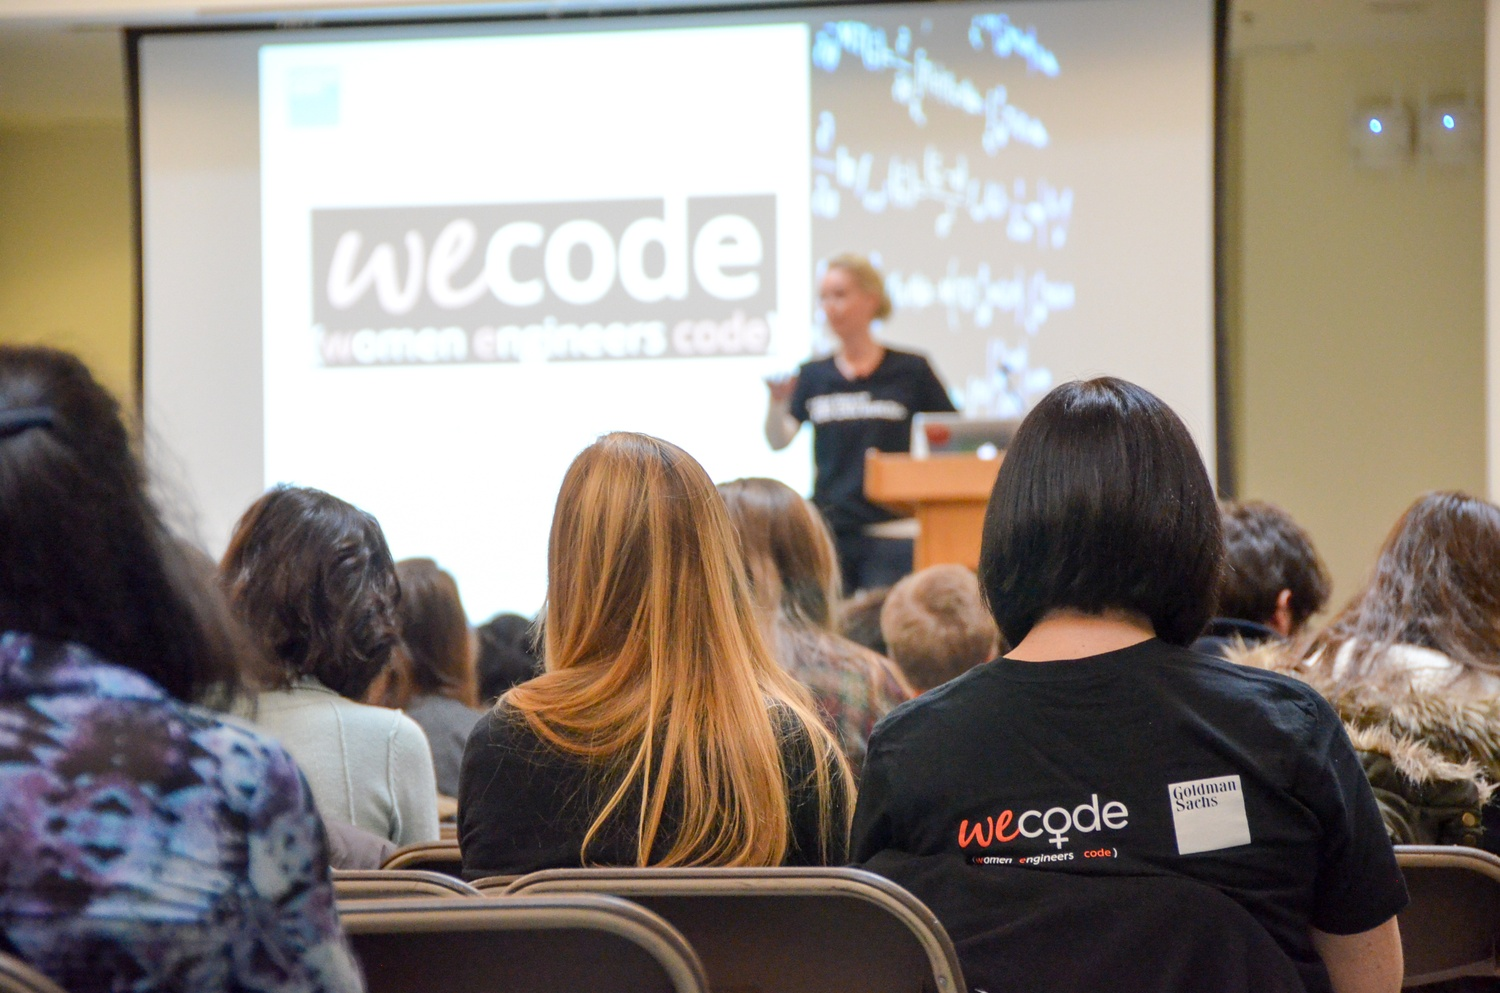 WECode conference attendees listen to a keynote address by Marie Louise Kirk on Saturday, Feb. 7.